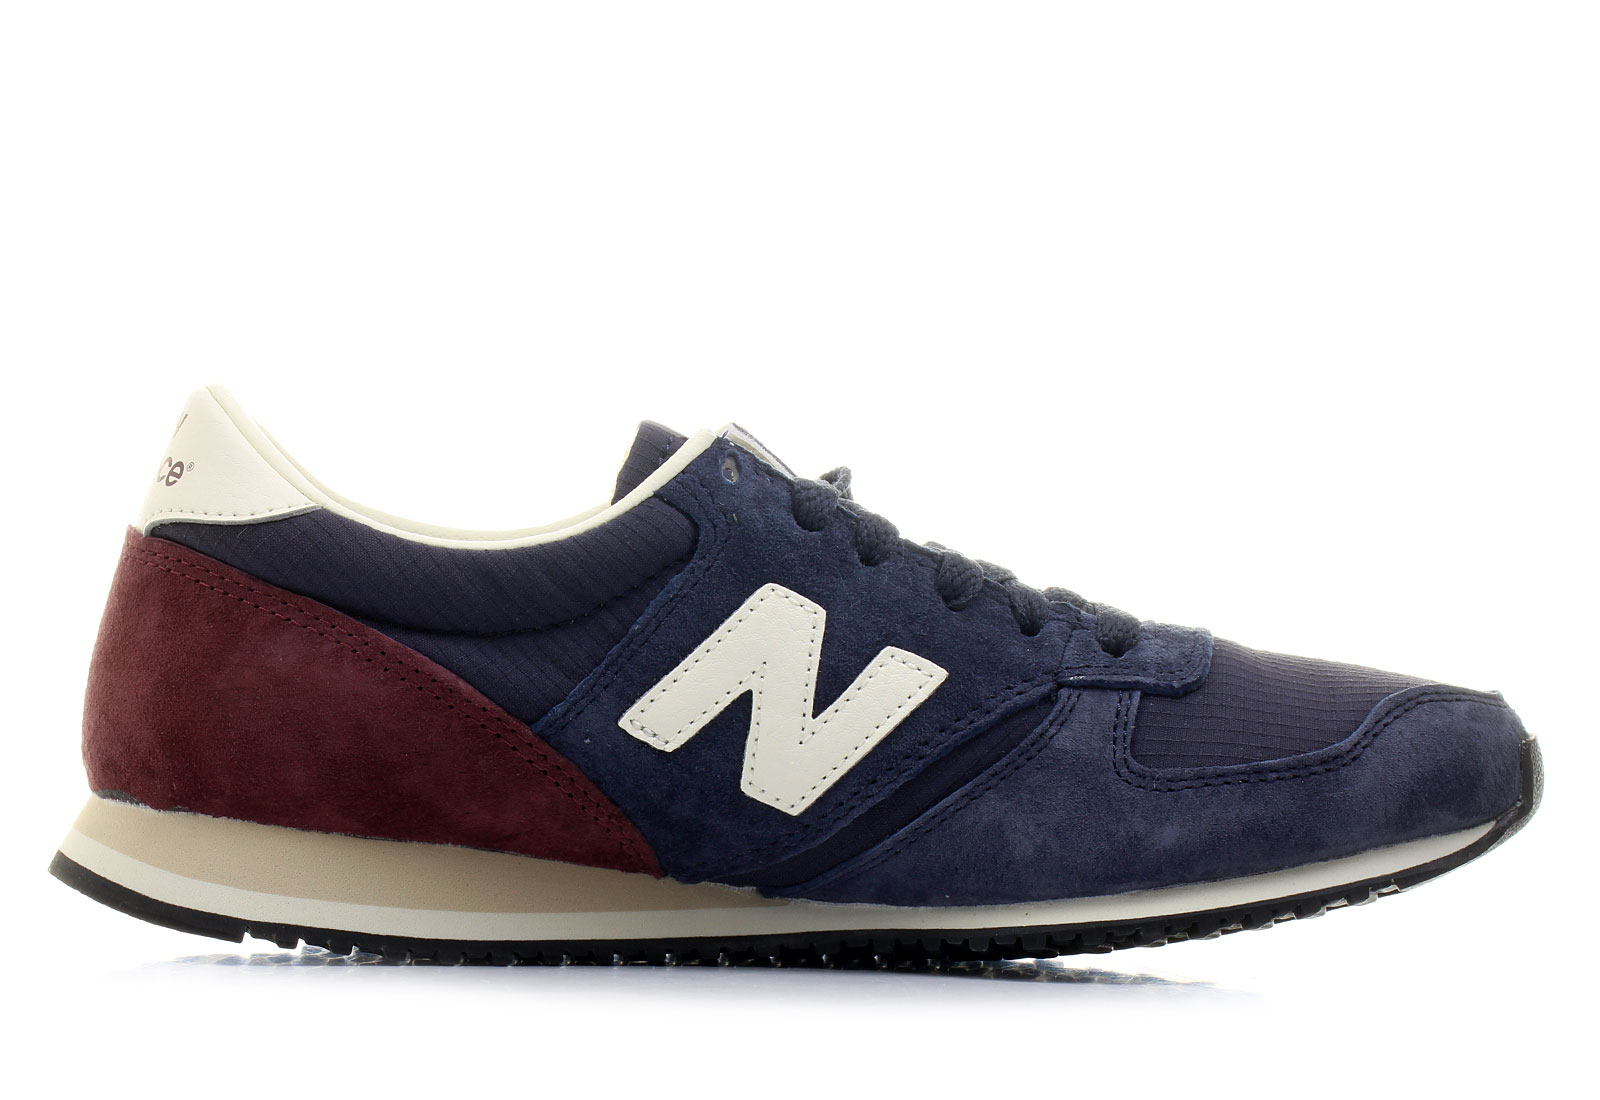 New Balance U 420 RBN Schuhe burgundy-navy-off white - 37 0KcX2PTCpY